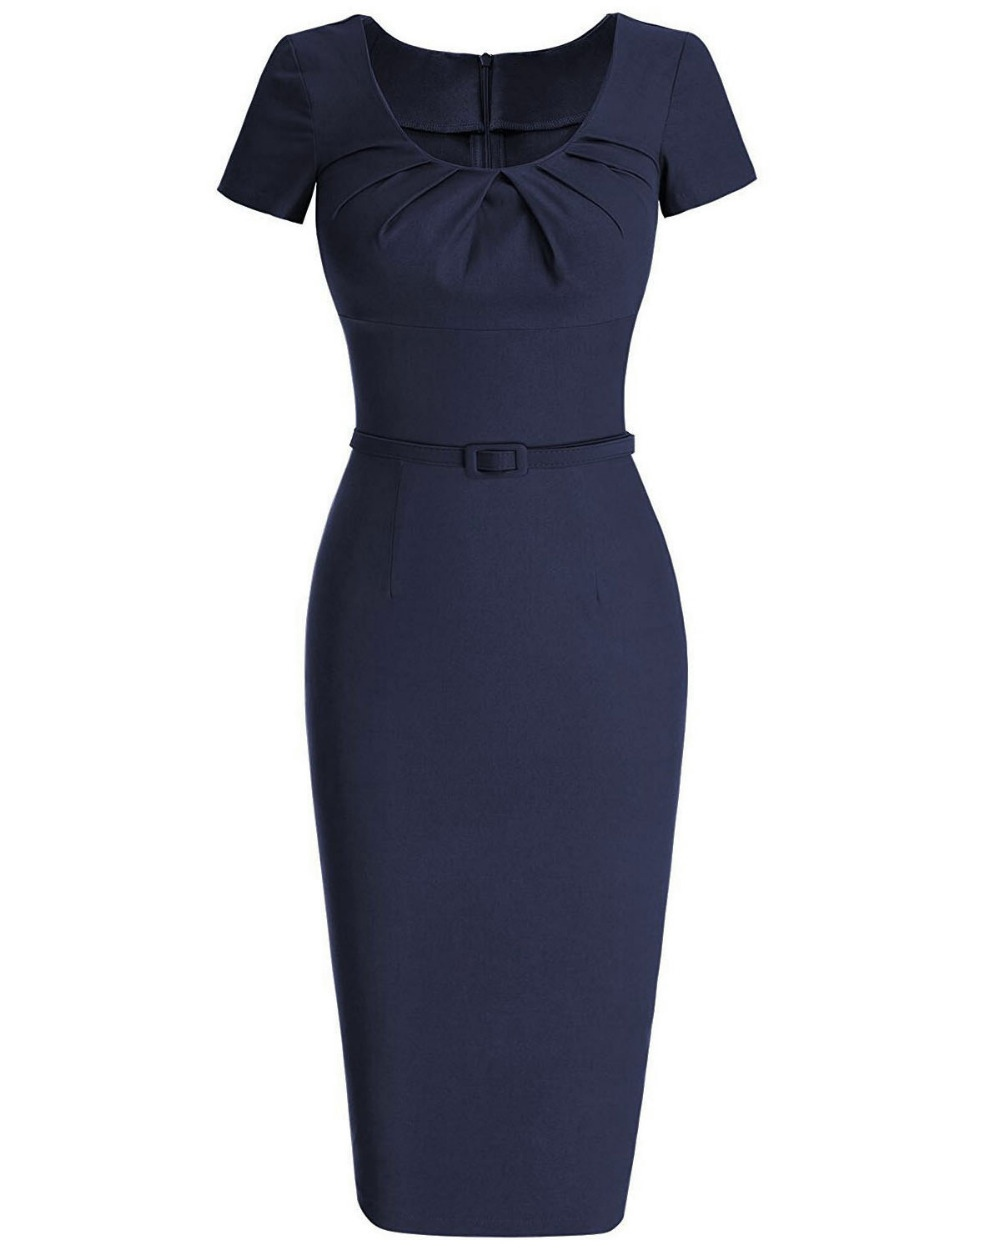 janie-navy-blue-retro-pencil-dress